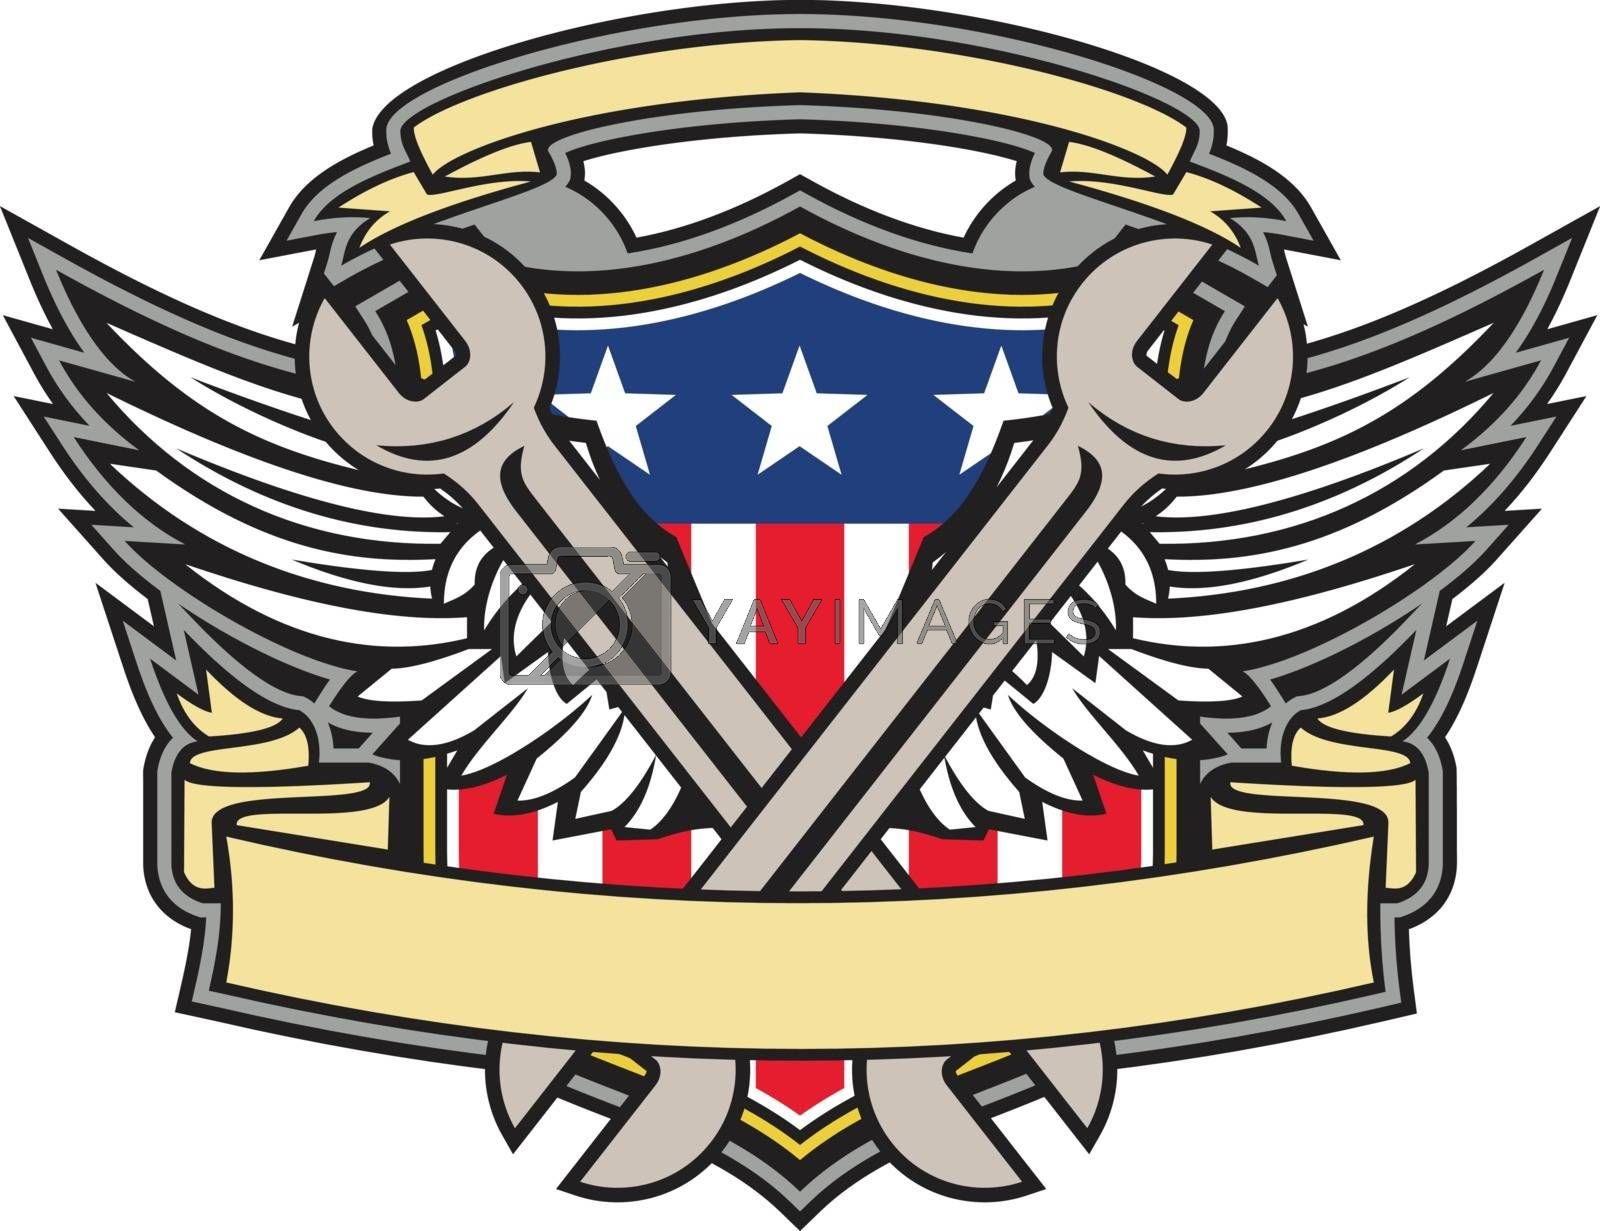 Crossed Wrench Army Wings American Flag Shield by patrimonio